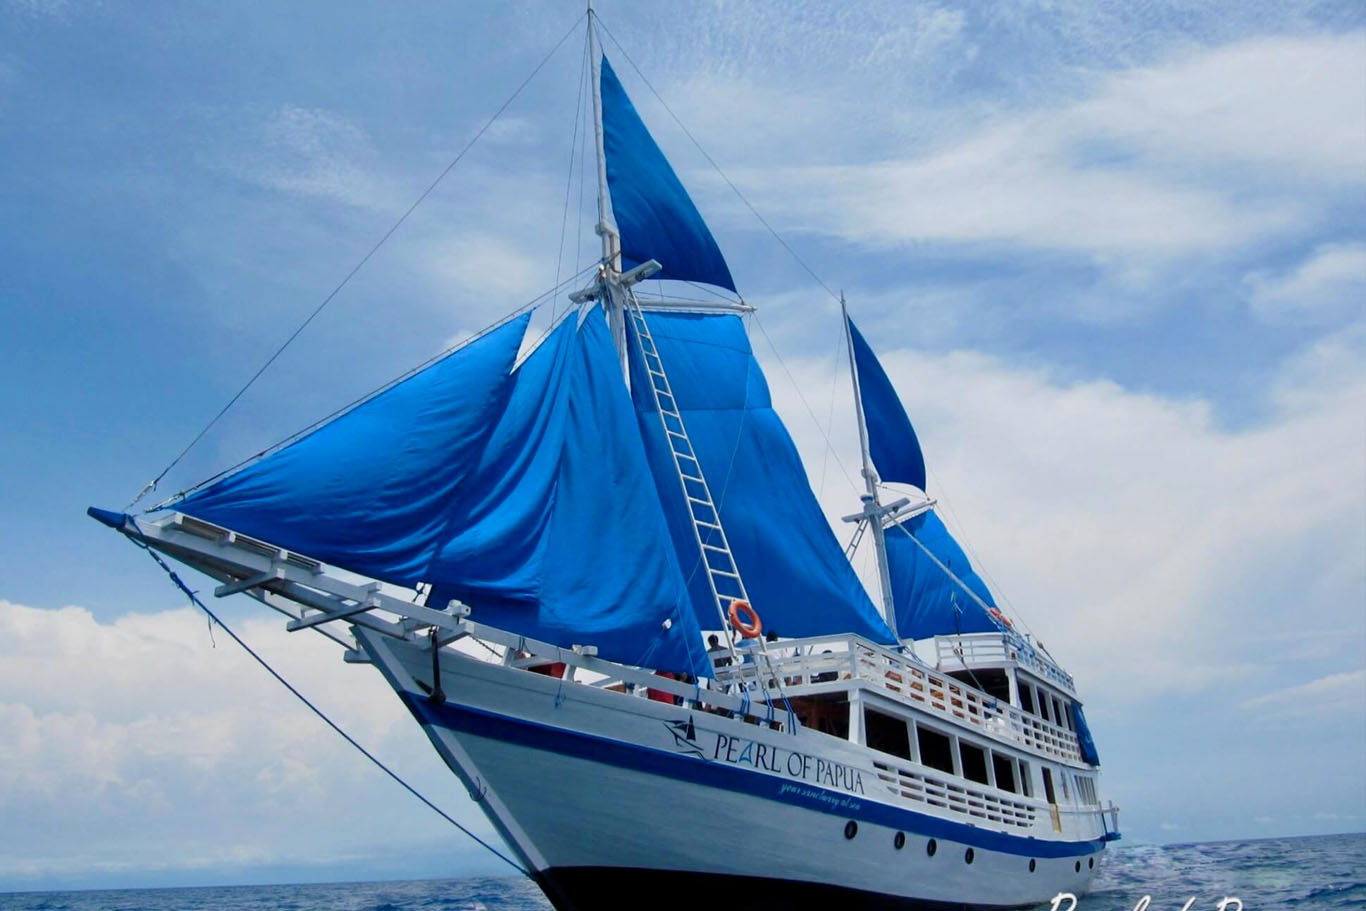 Raja Ampat Liveaboard Charter by Pearl of Papua